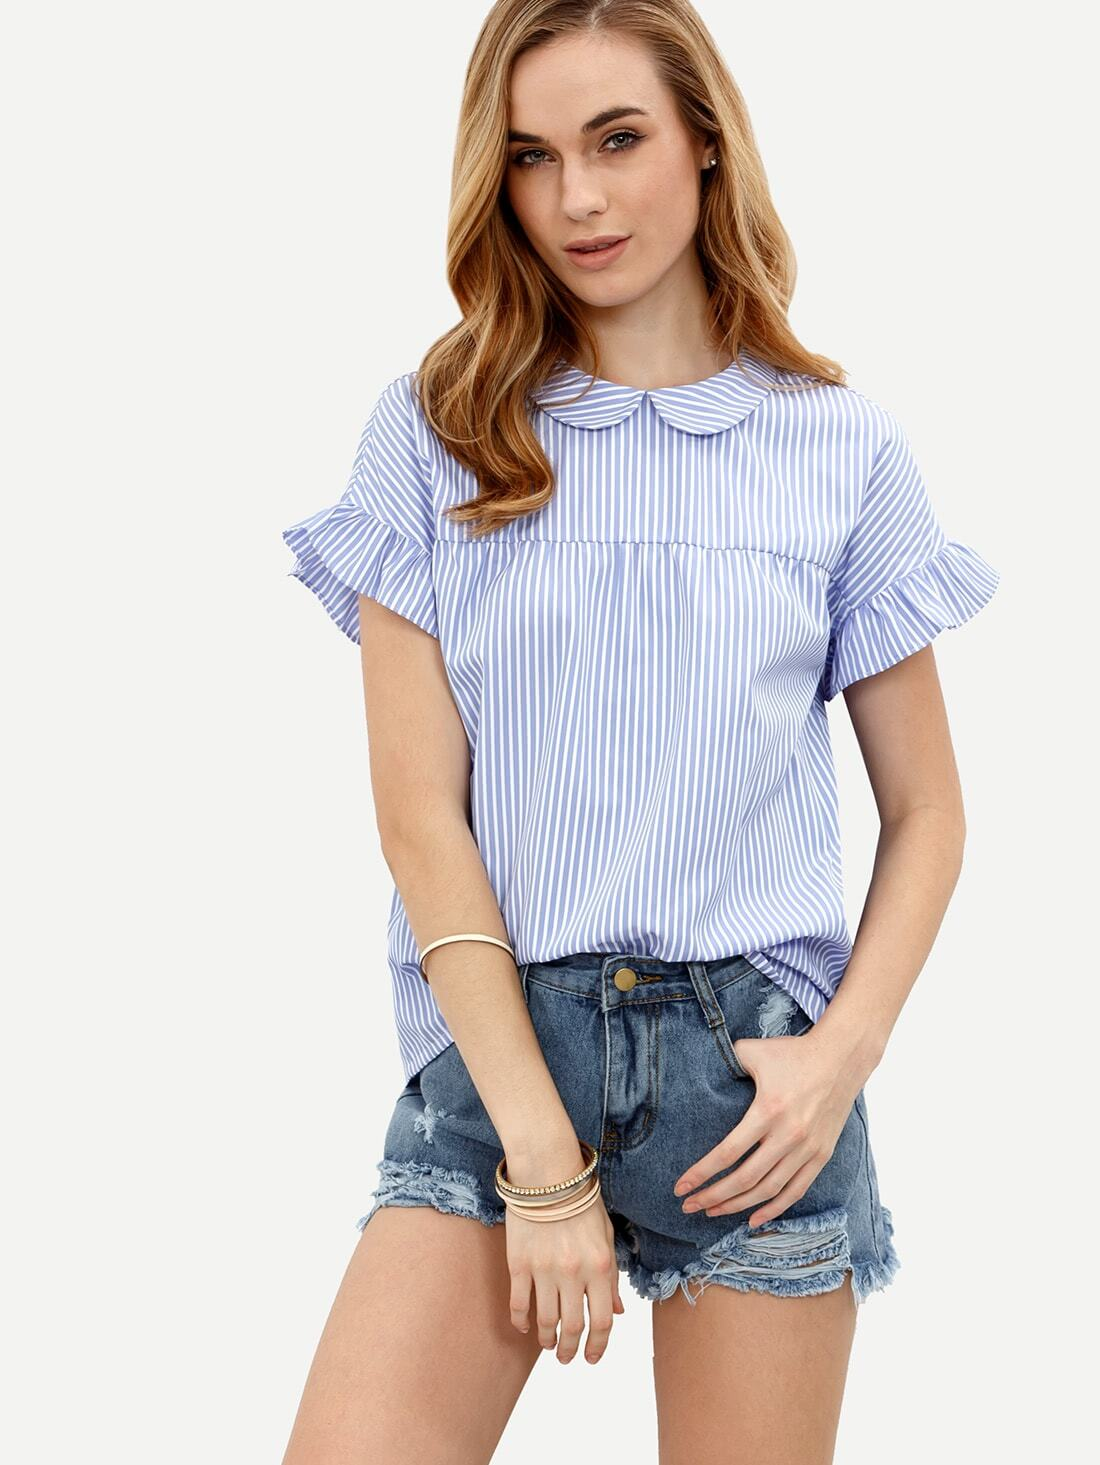 Striped Peter Pan Collar Self-tie Blouse -SheIn(Sheinside)